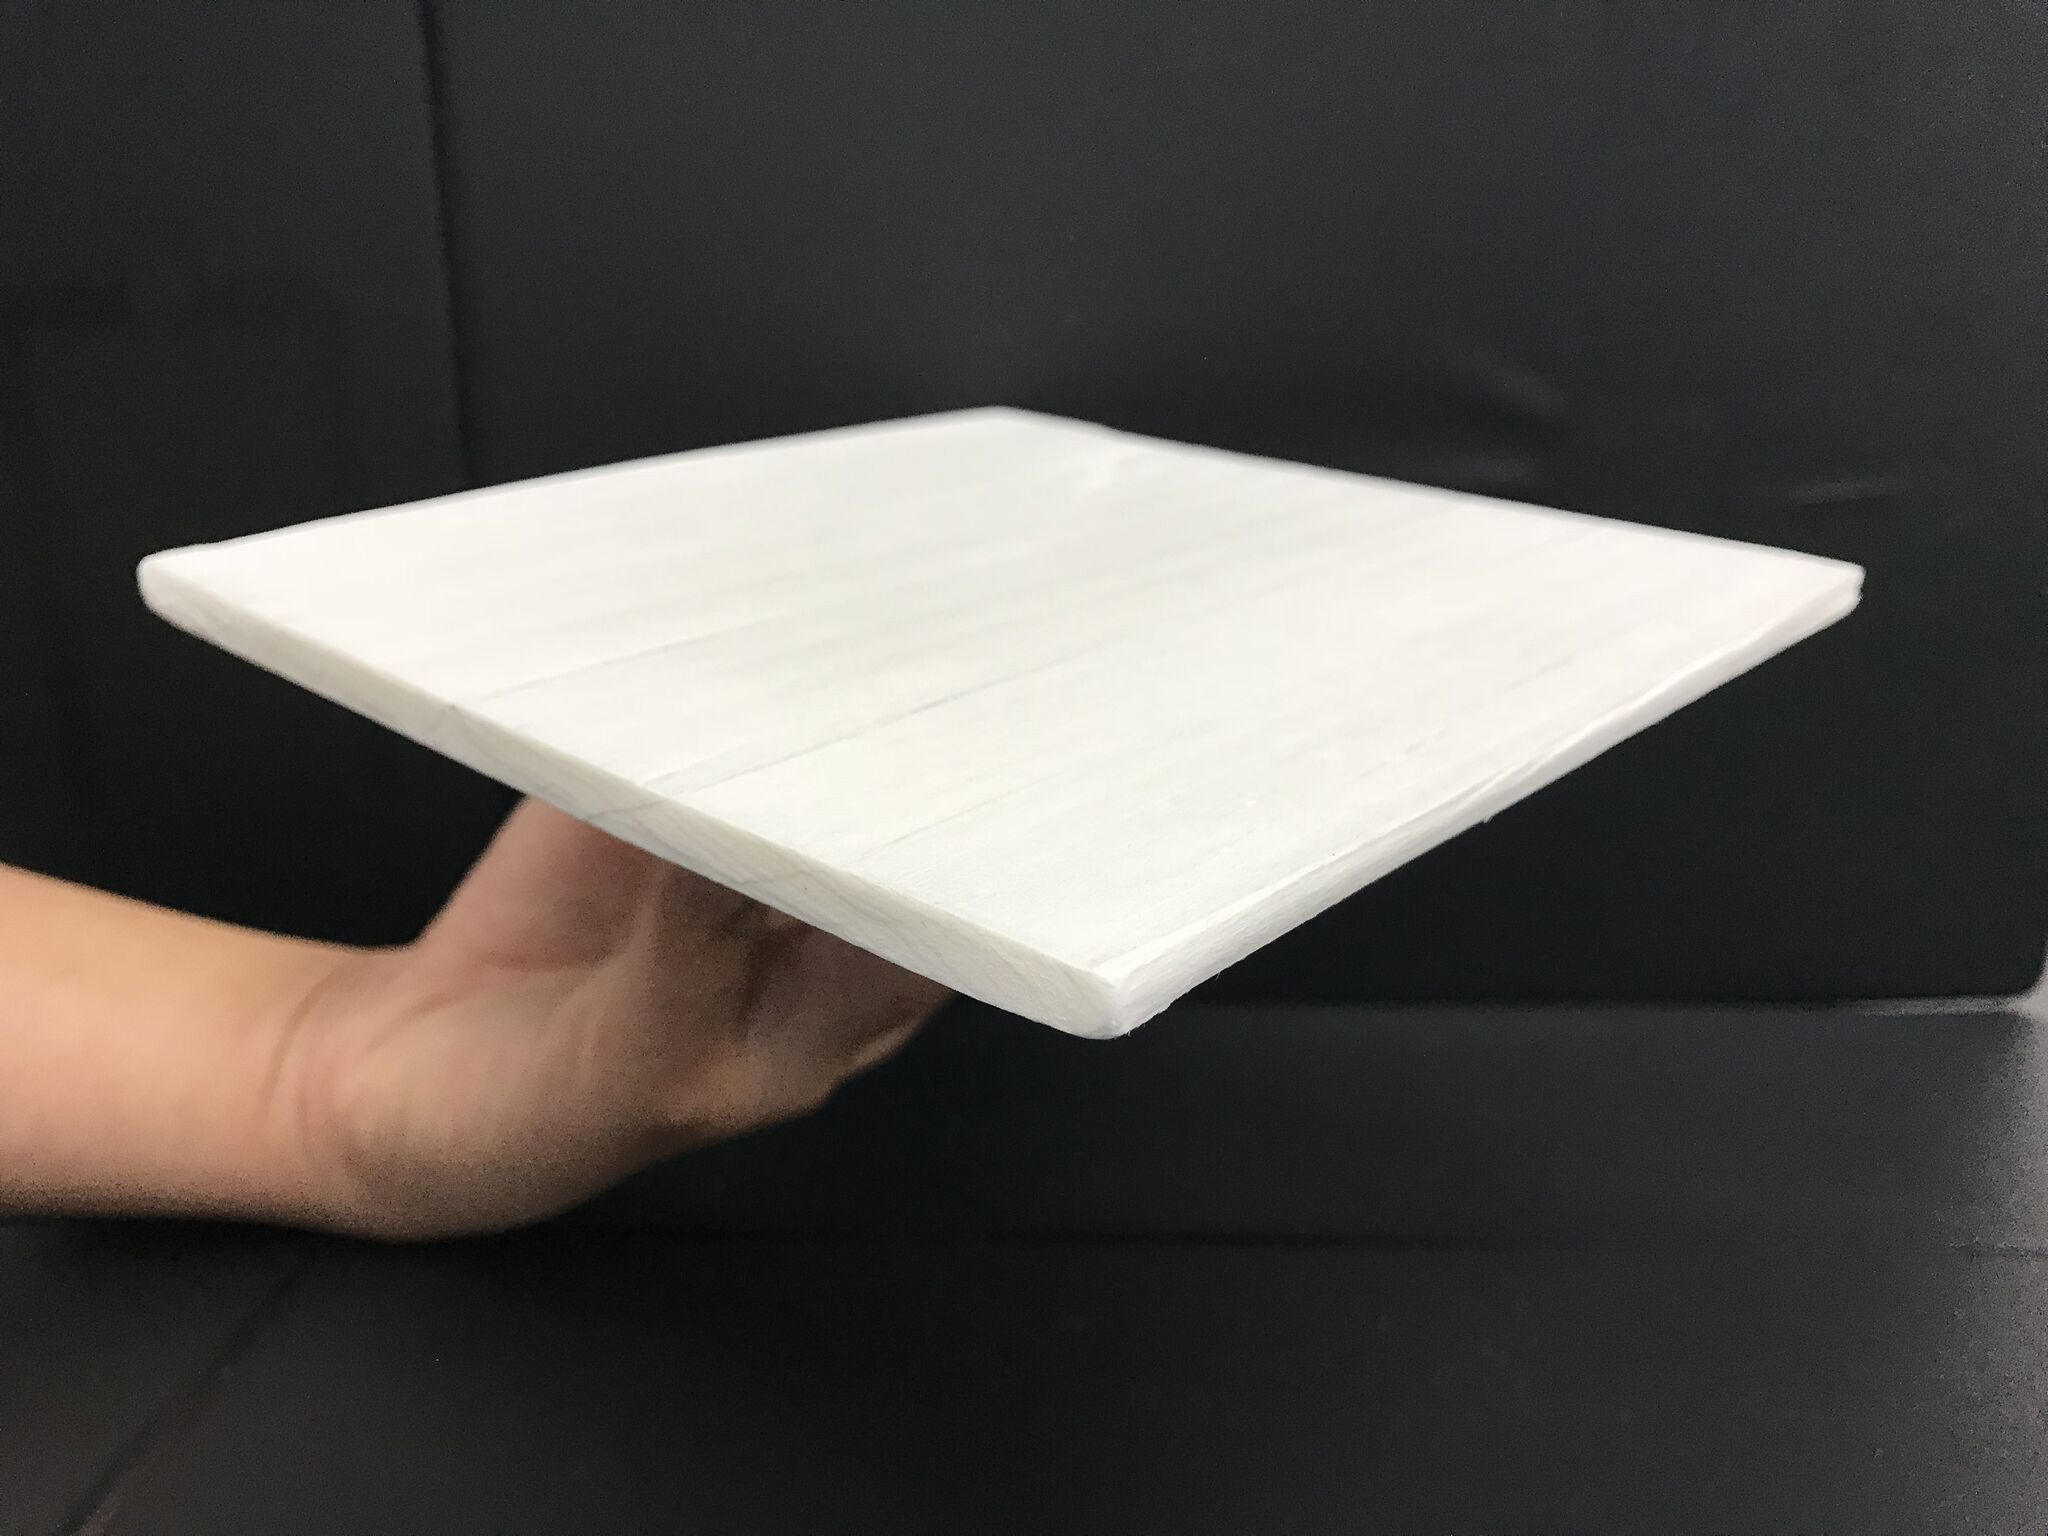 Scientists Develop A Super Strong Wood That Completely Reflects